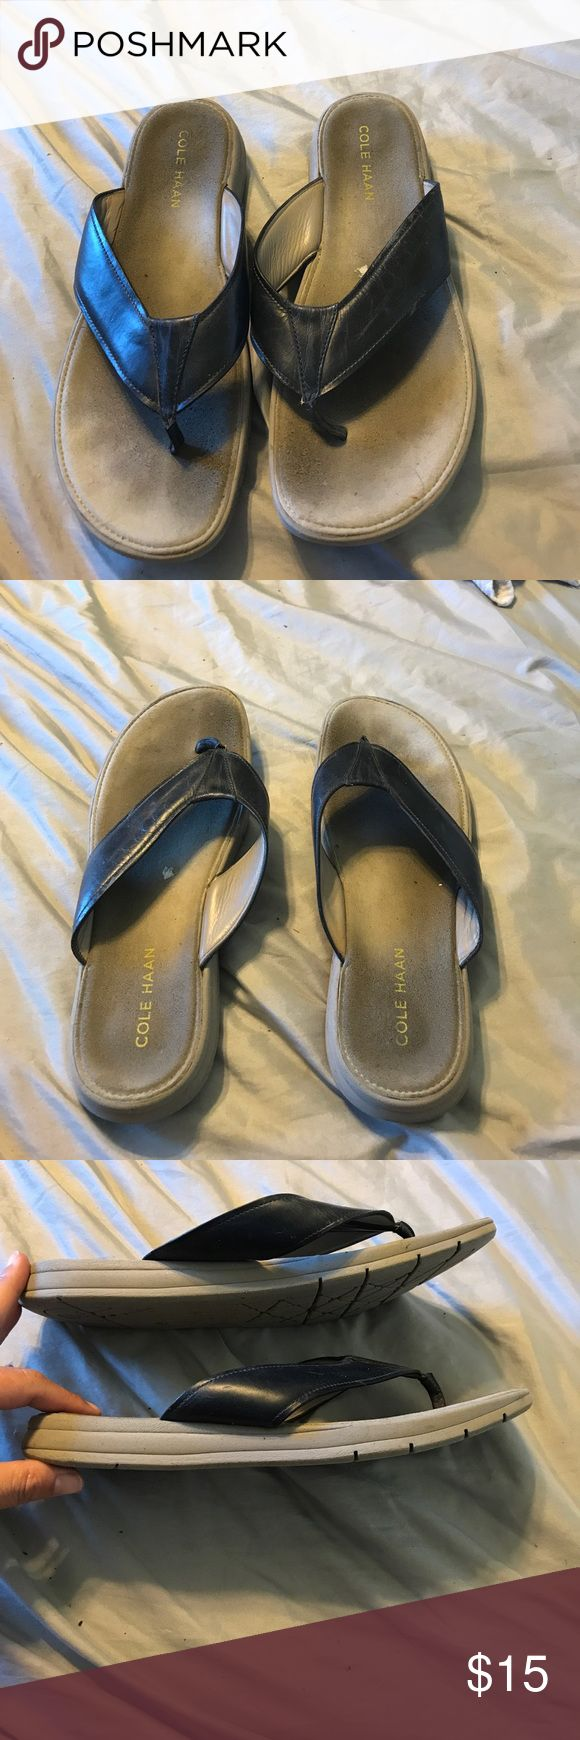 Cole Haan Nike air navy flip flop sandal Leather thong. Putty rubber sole. Cole Haan Shoes Sandals & Flip-Flops